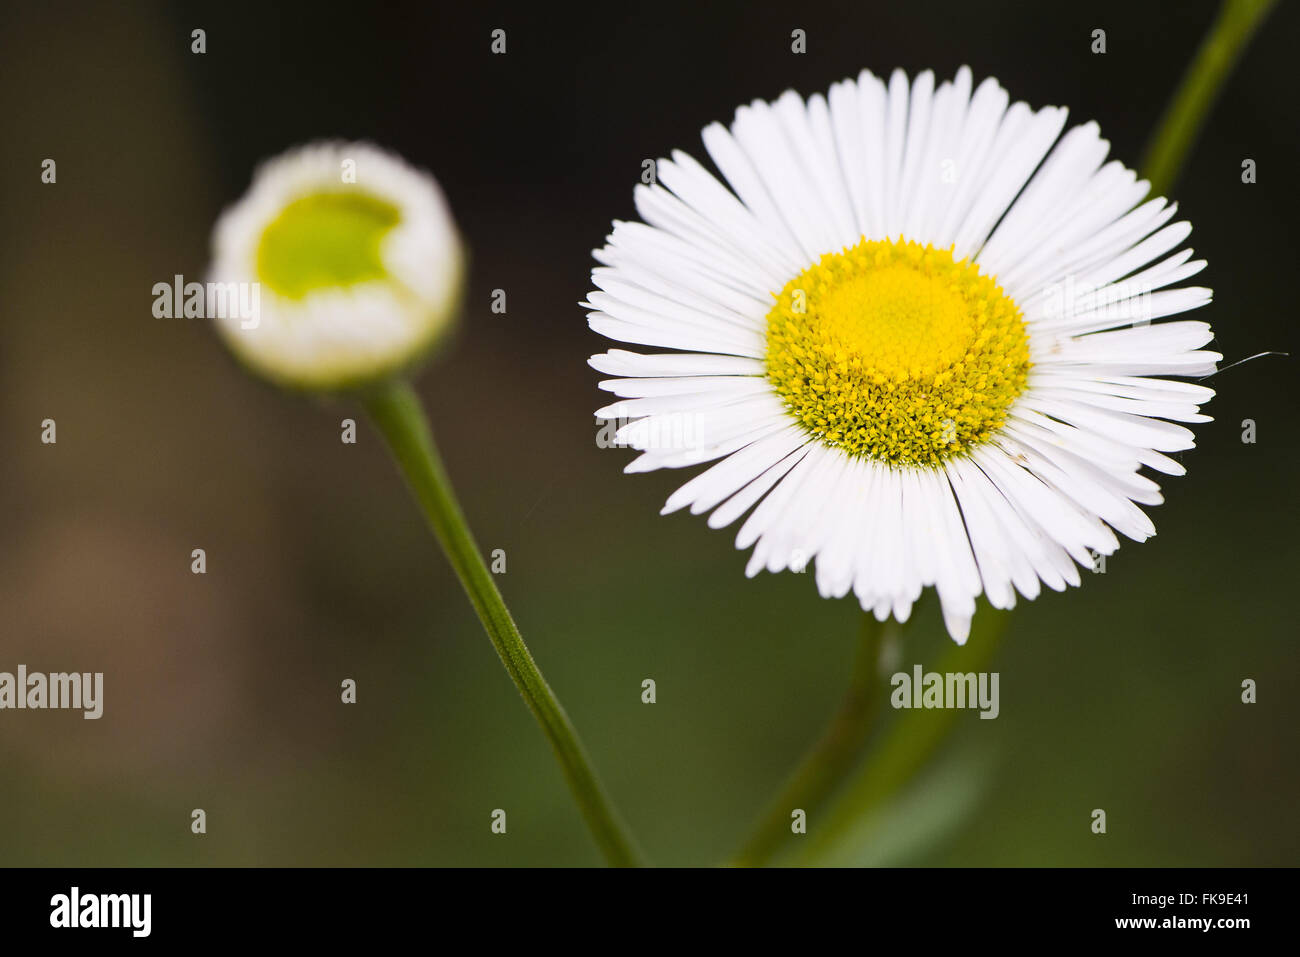 Daisies Asteraceae family - also known as composite flower - Stock Image